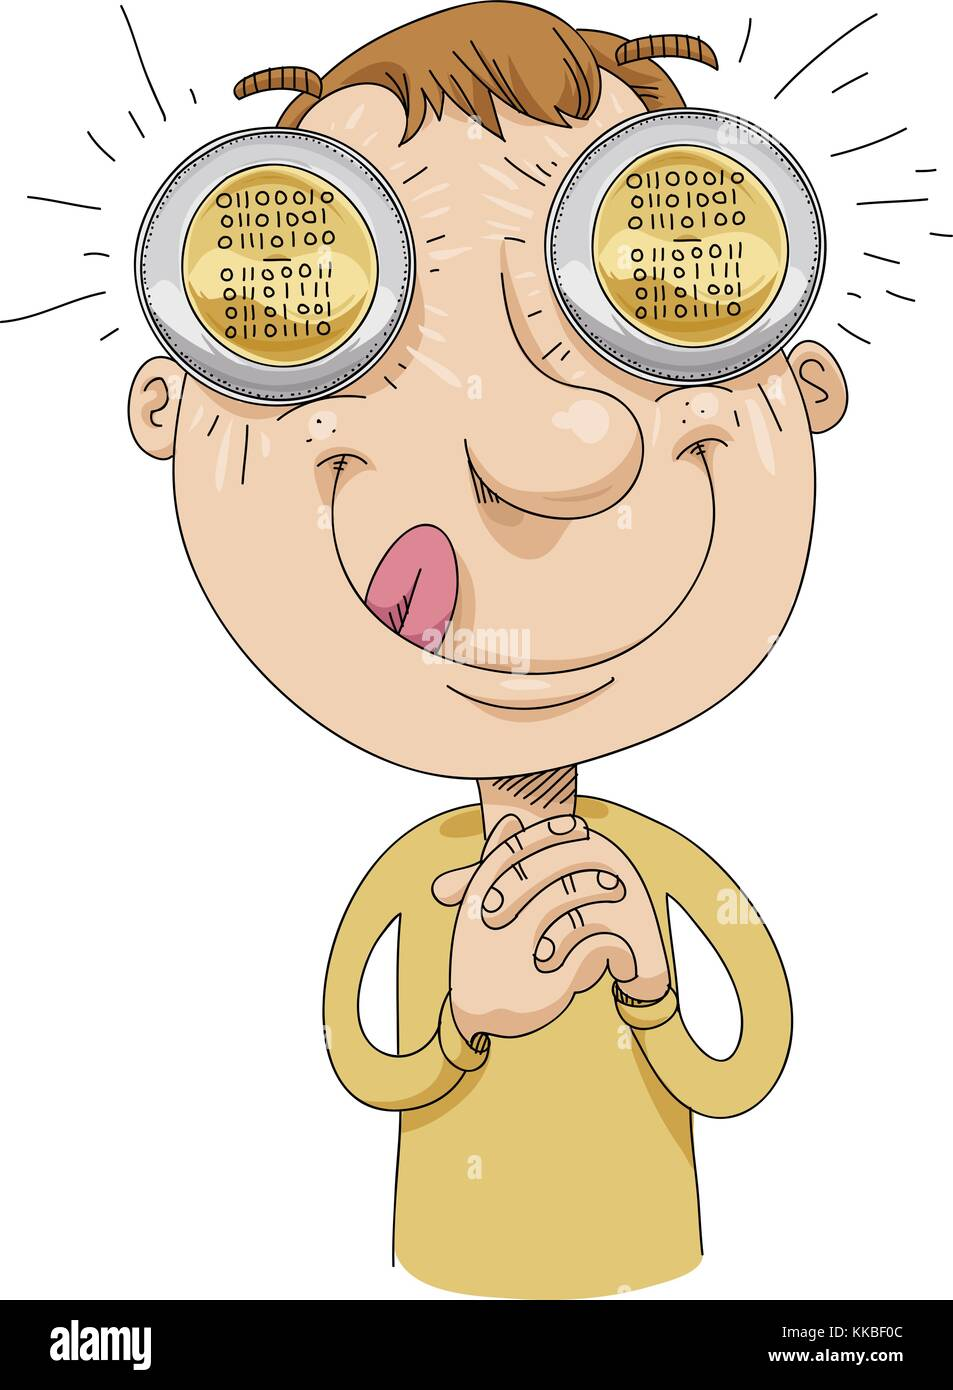 A greedy cartoon man with bitcoins in his eyes thinks about speculative wealth. The word bitcoin appears on the - Stock Vector